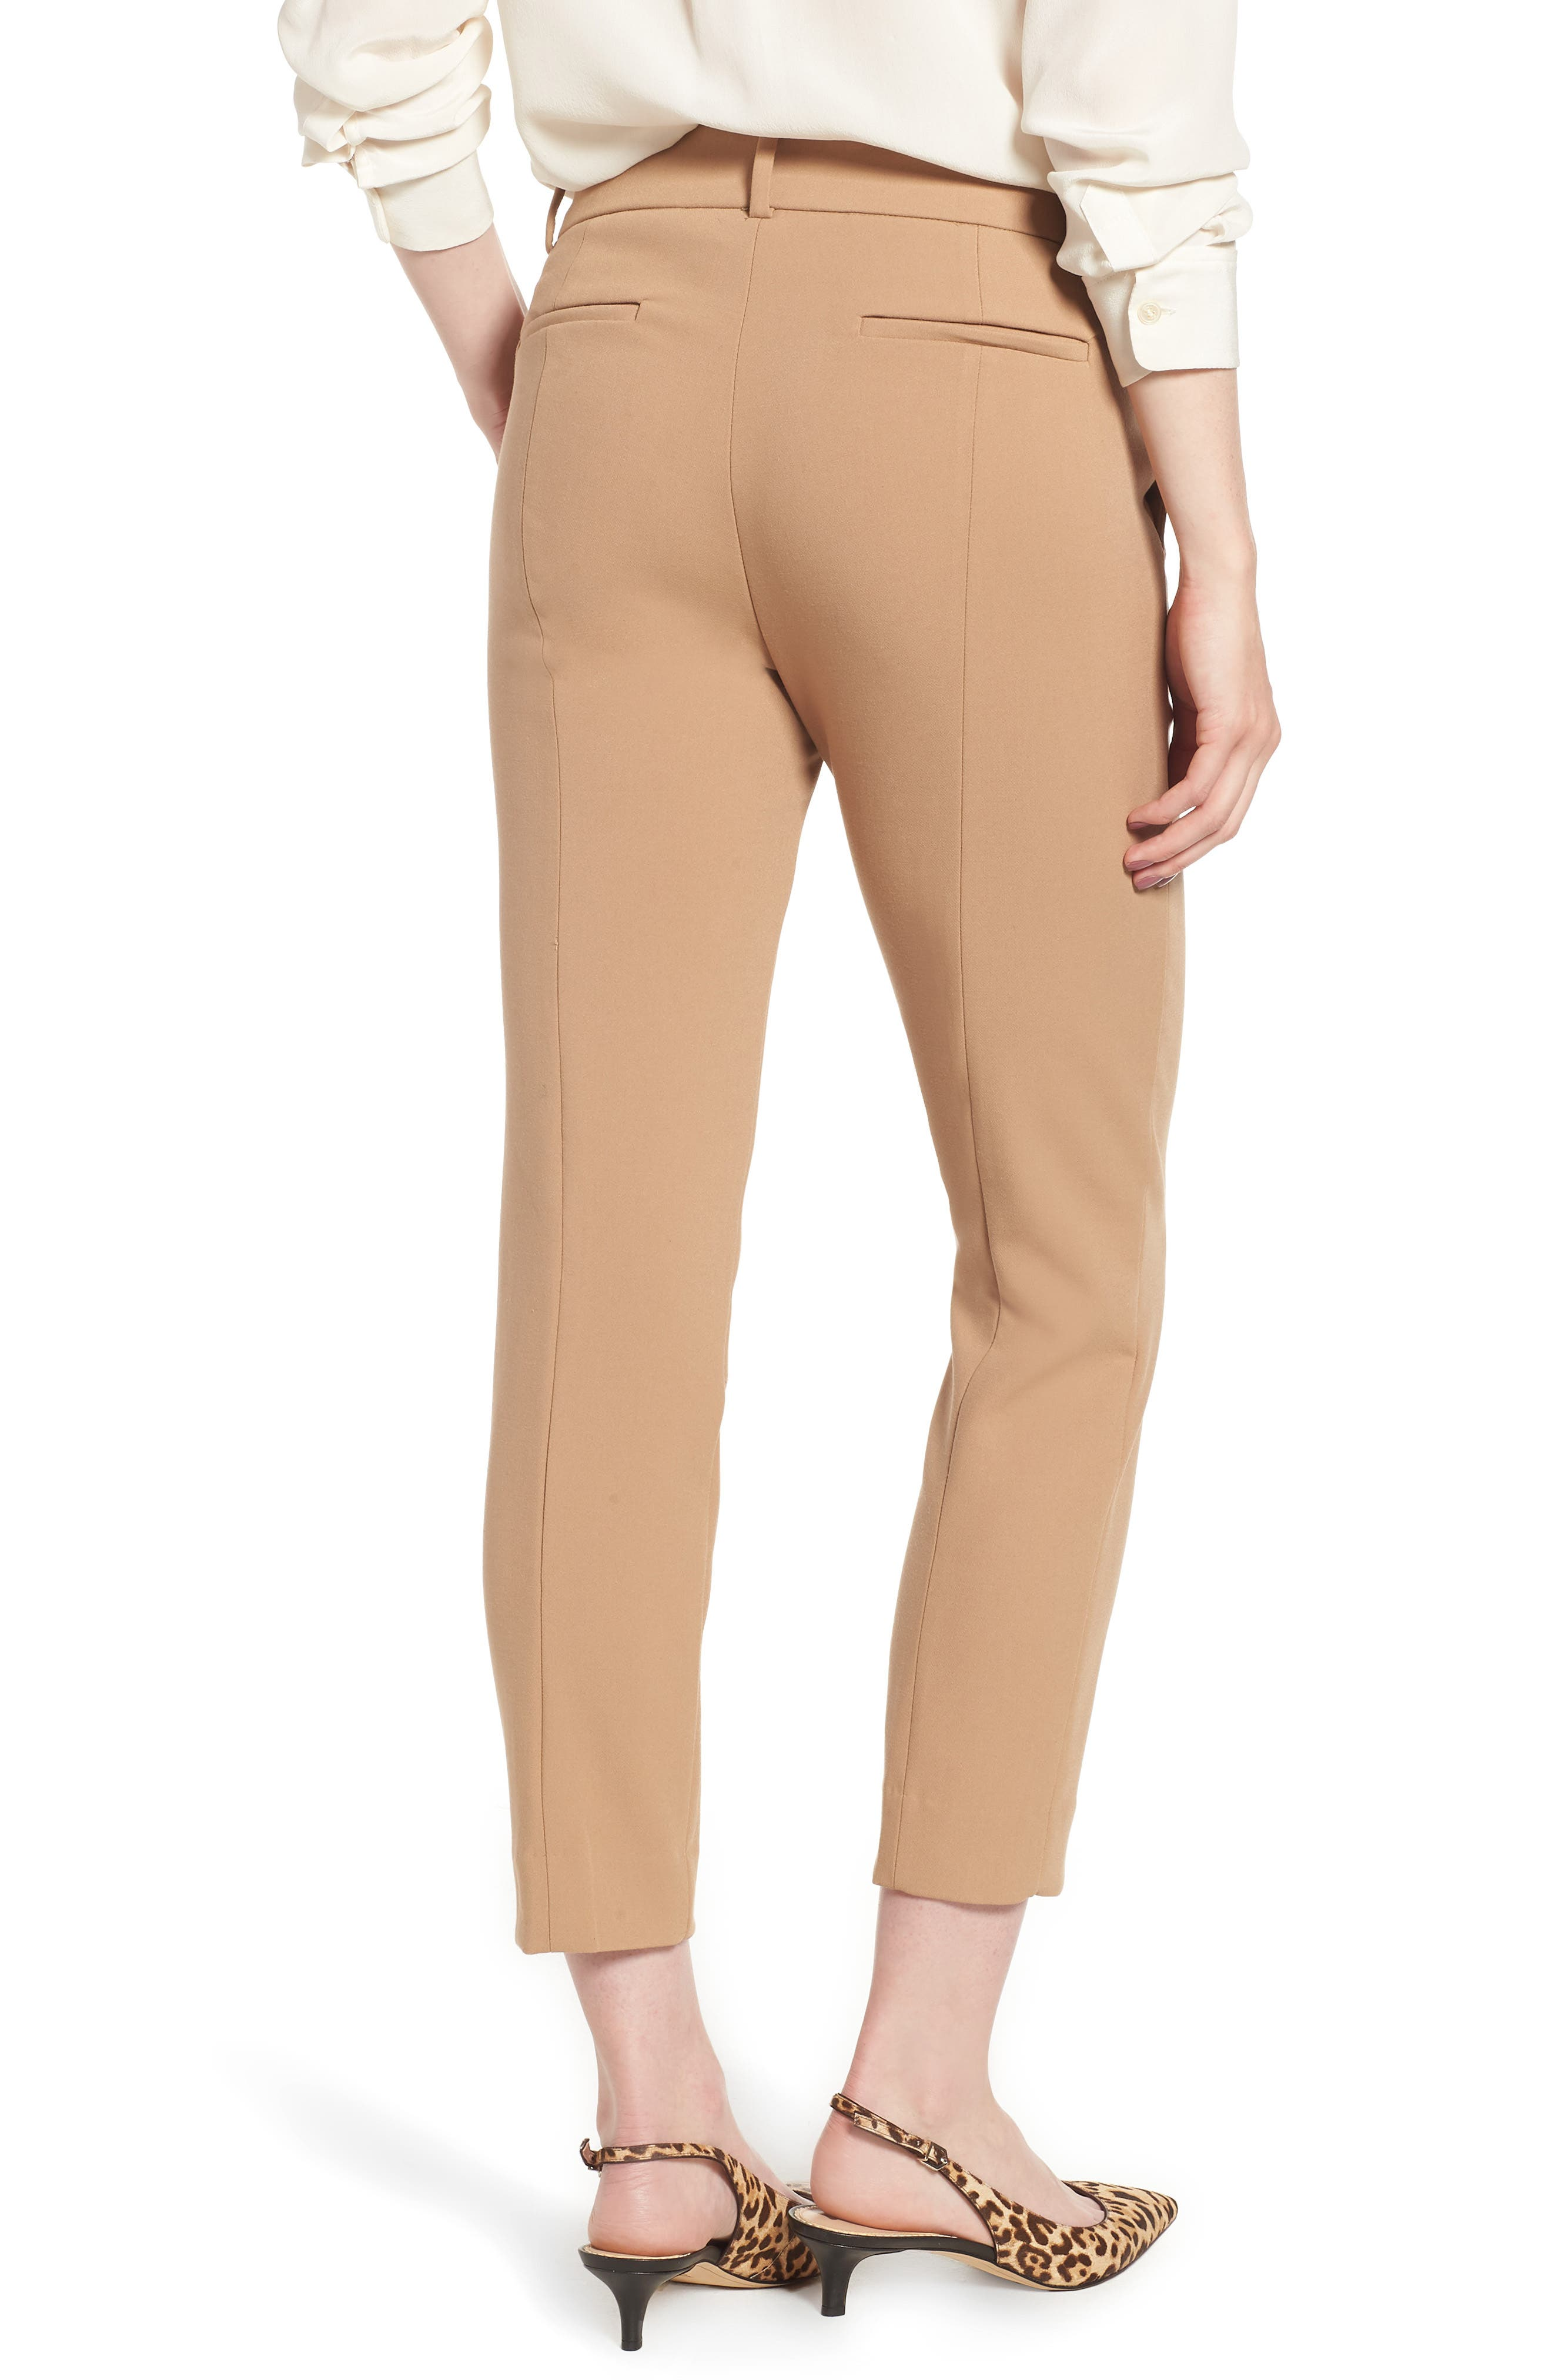 Cameron Four Season Crop Pants,                             Alternate thumbnail 2, color,                             HEATHER SADDLE